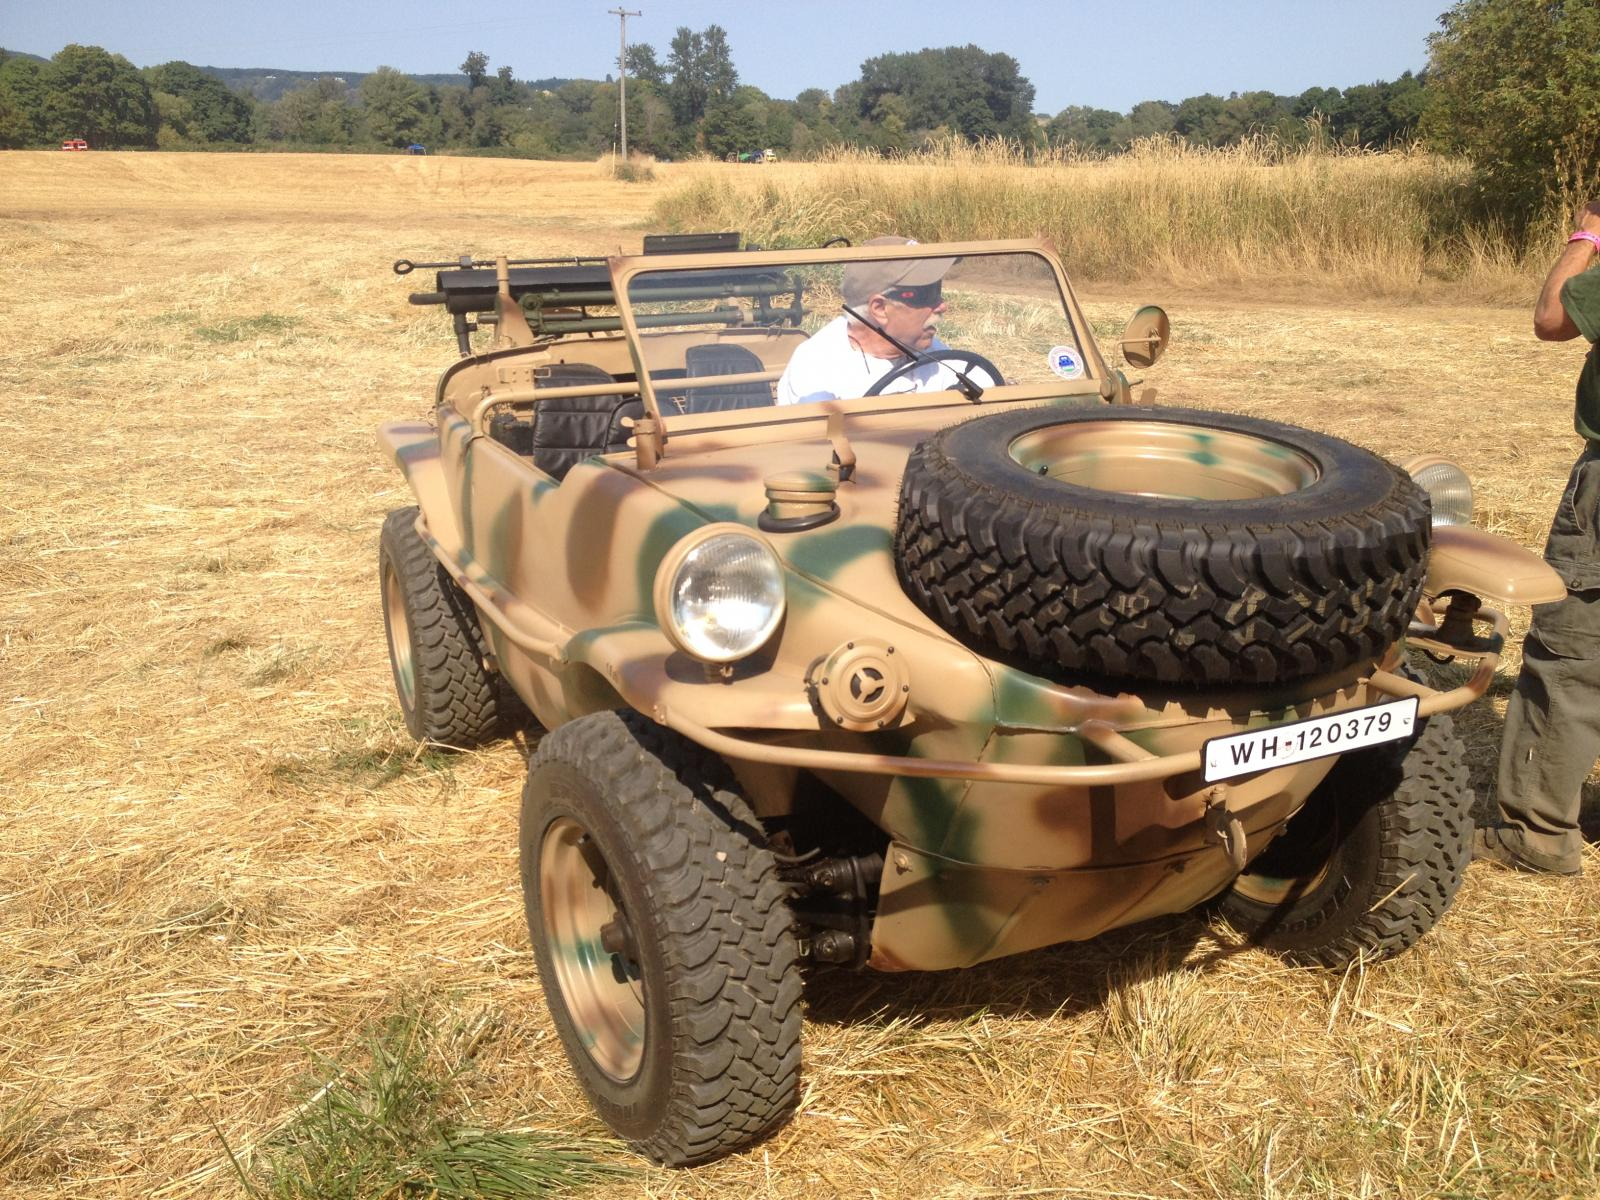 1943 Type 166 Schwimmenwagen-one of 22 in the USA?